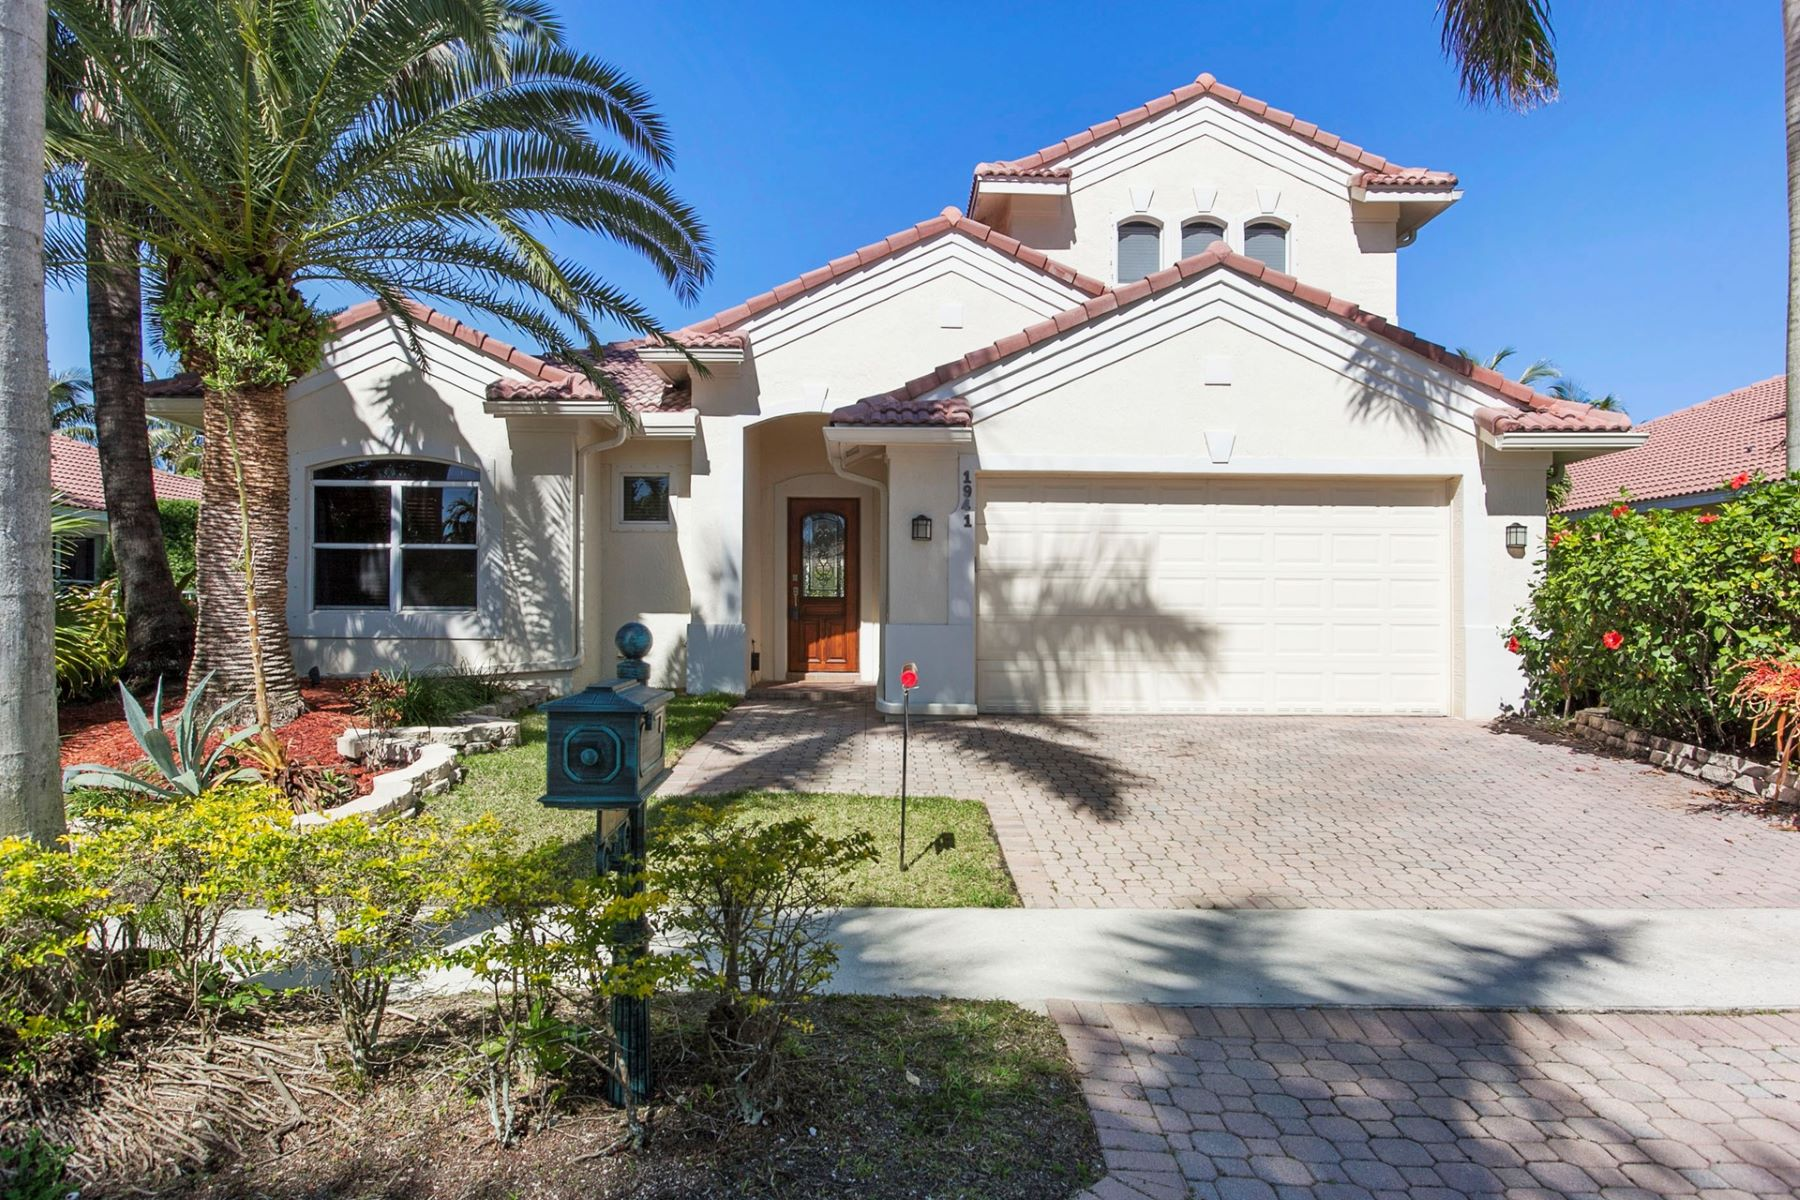 Single Family Home for Rent at 1941 Harbor View Cir 1941 Harbor View Cir Weston, Florida 33327 United States